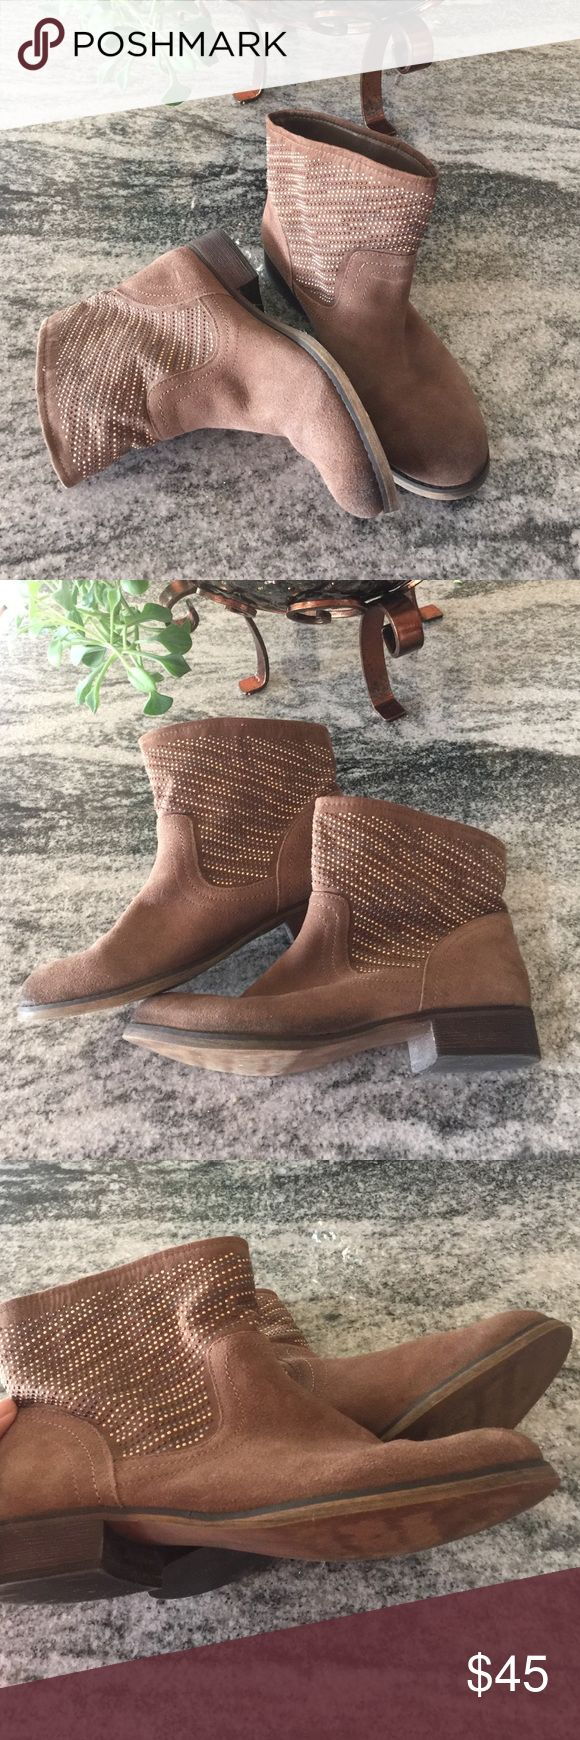 Carlos Santana boots ❣️❣️❣️ Carlos Santana ankle boots gorgeous with sparkles gold/brown/silver  little scratched right side (front ) pic 4 you can see , SIZE 8.5 ❣️❣️❣️ Carlos Santana Shoes Ankle Boots & Booties